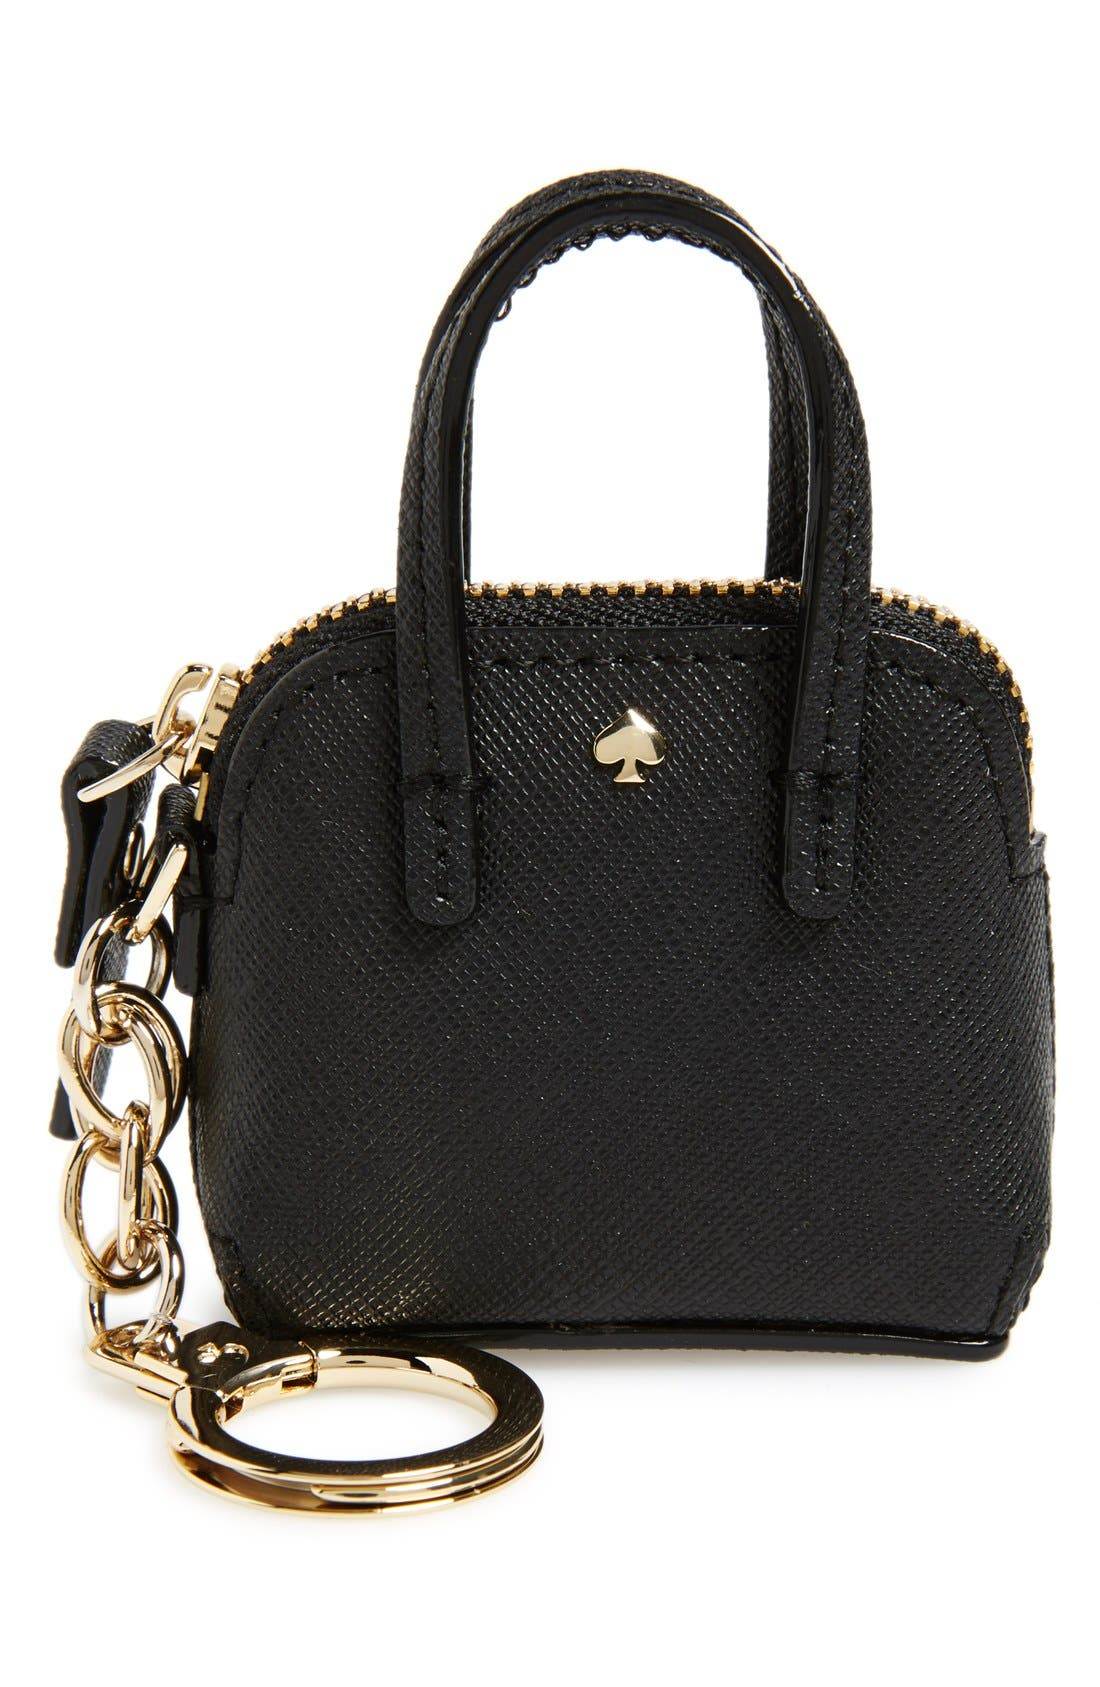 Alternate Image 1 Selected - kate spade new york 'things we love - maise' bag charm